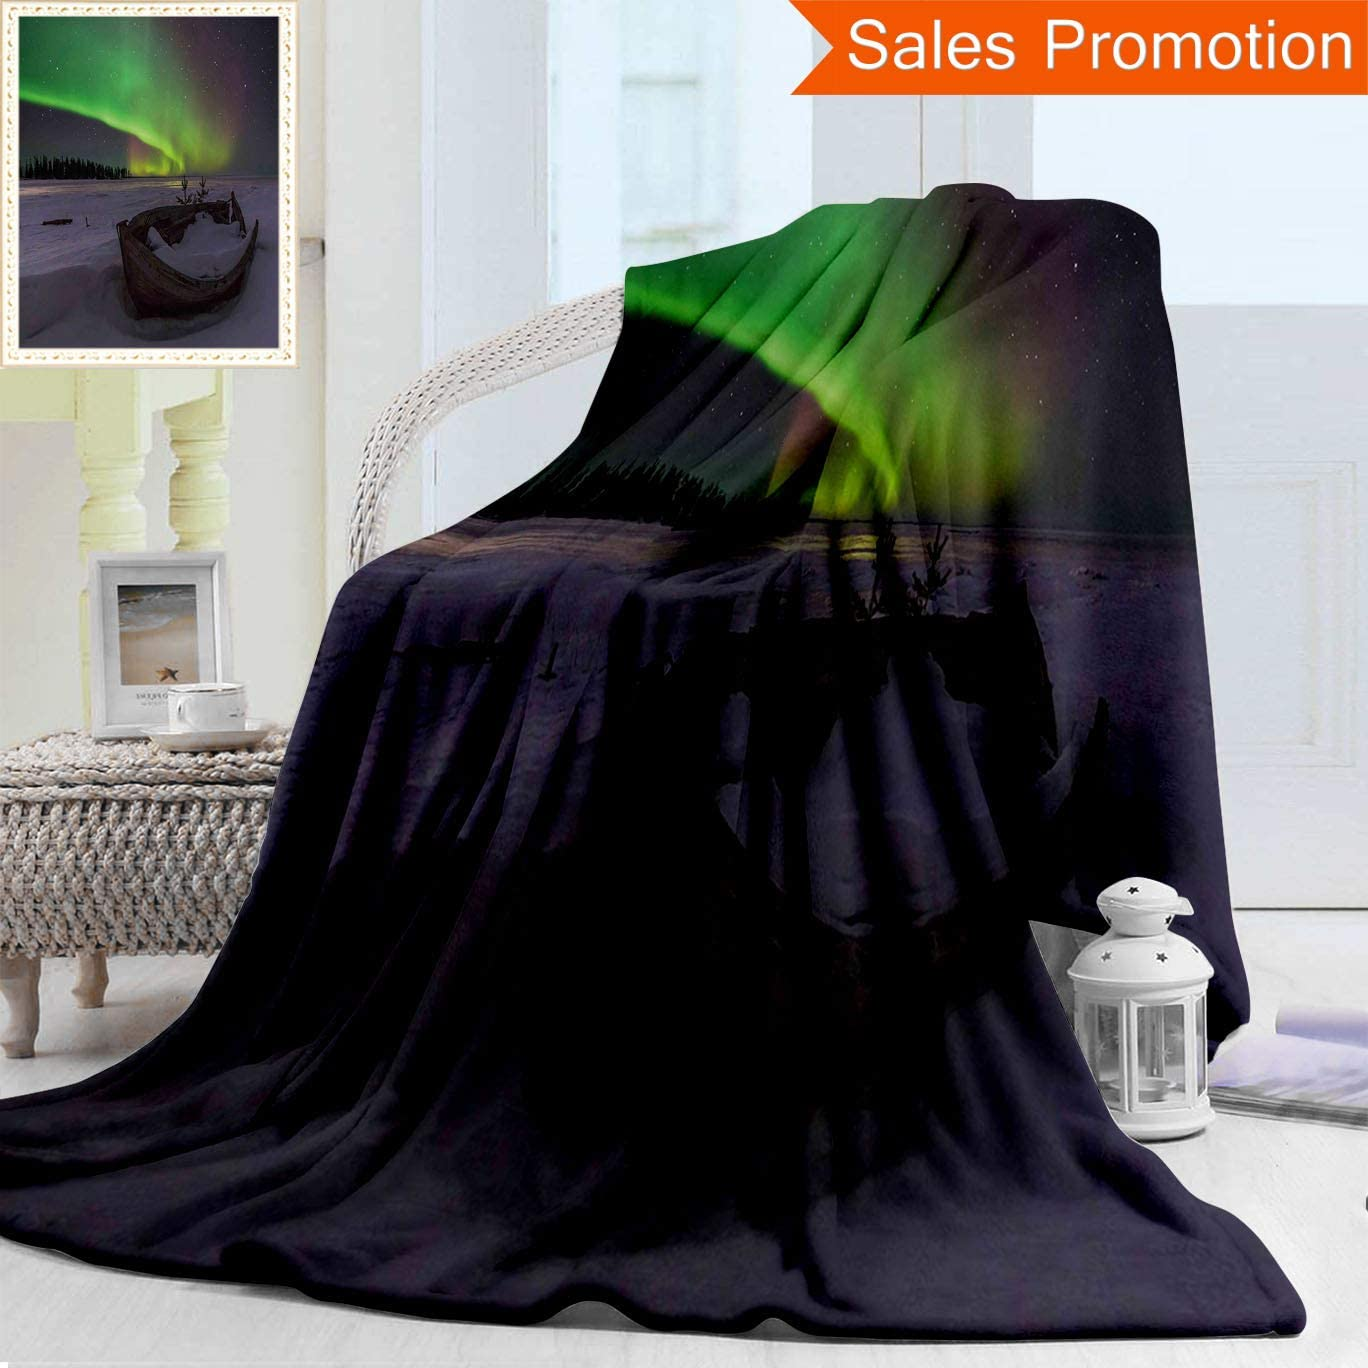 Amazon Com Unique Custom Warm 3d Print Flannel Blanket Northern Lights Winter Landscape With Wooden Boat Galaxy Illumination Nobody Cosmos Image Cozy Plush Supersoft Blankets For Couch Bed Twin Size 60 X 80